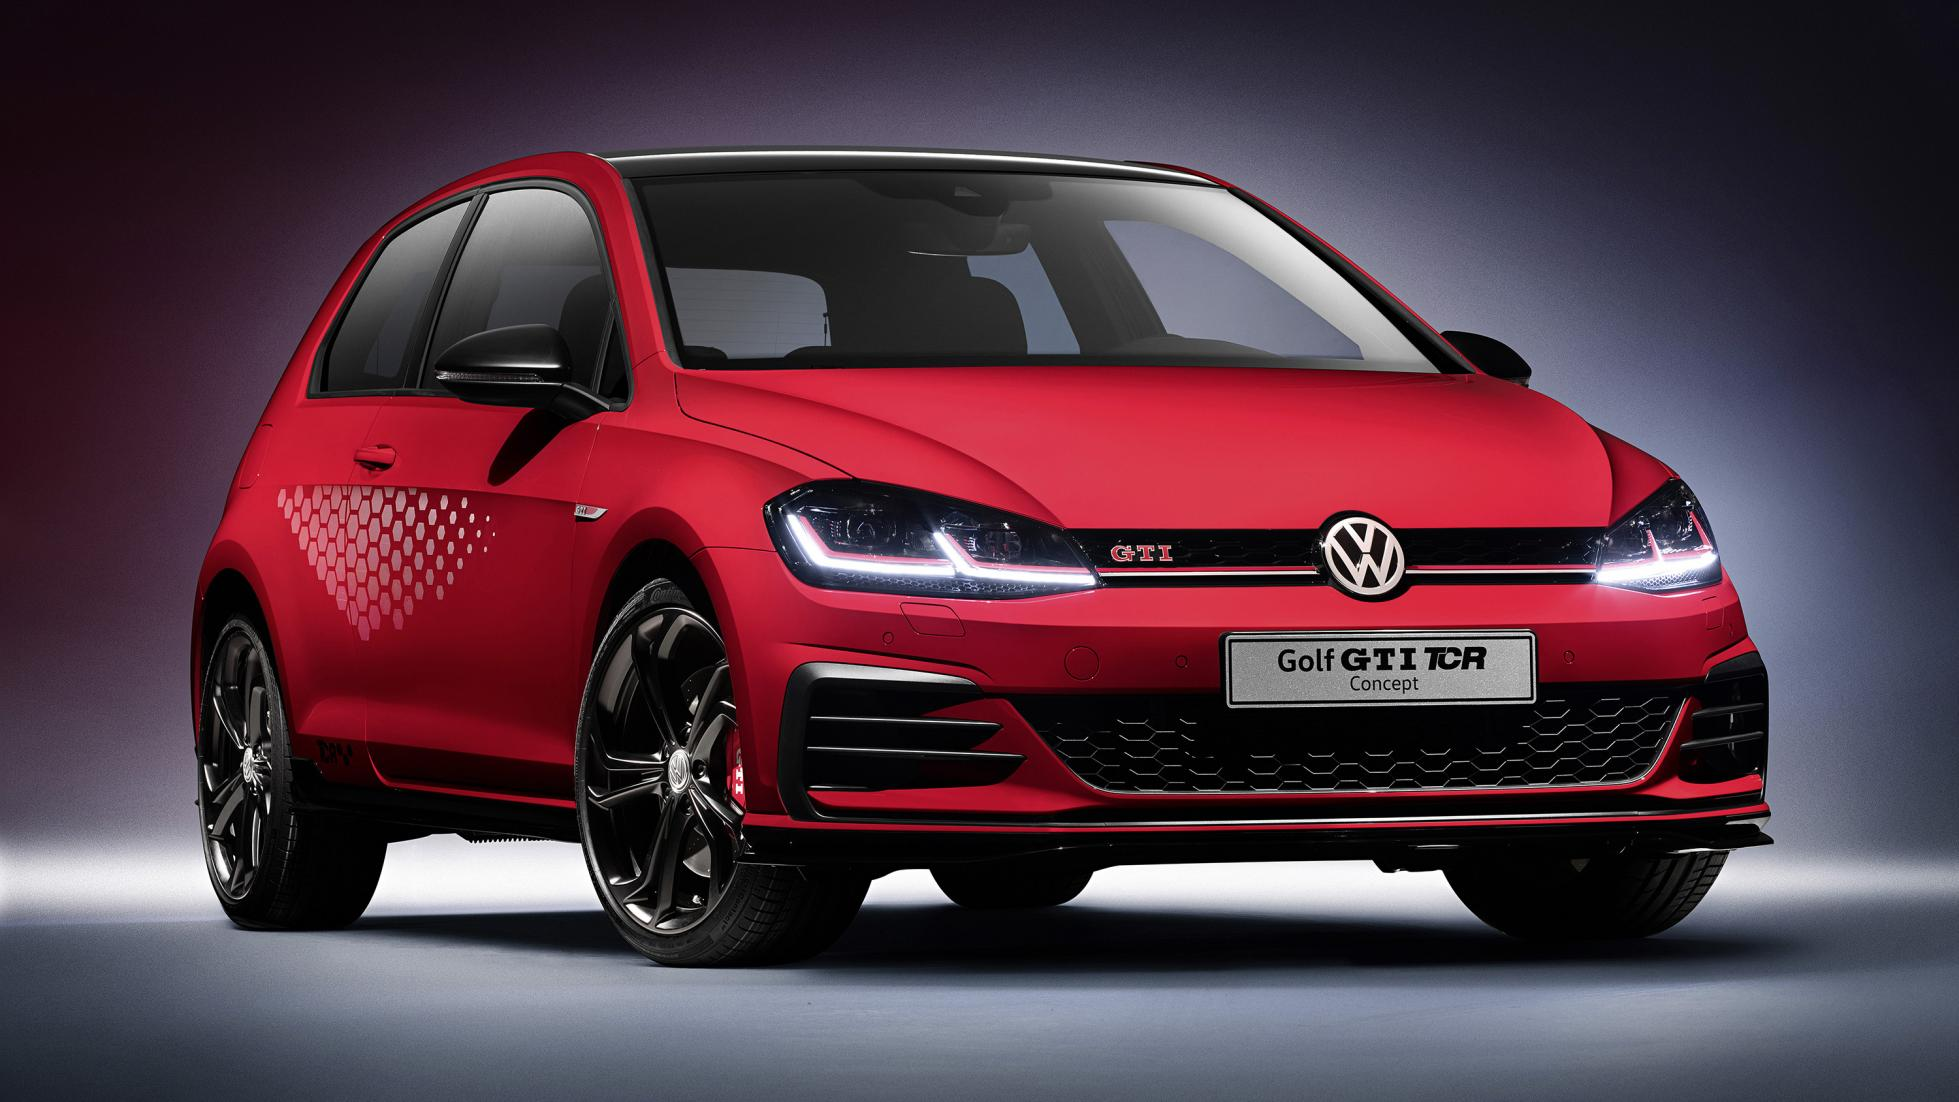 Volkswagen Golf Gti Tcr Is De Snelste Golf Topgear Nederland